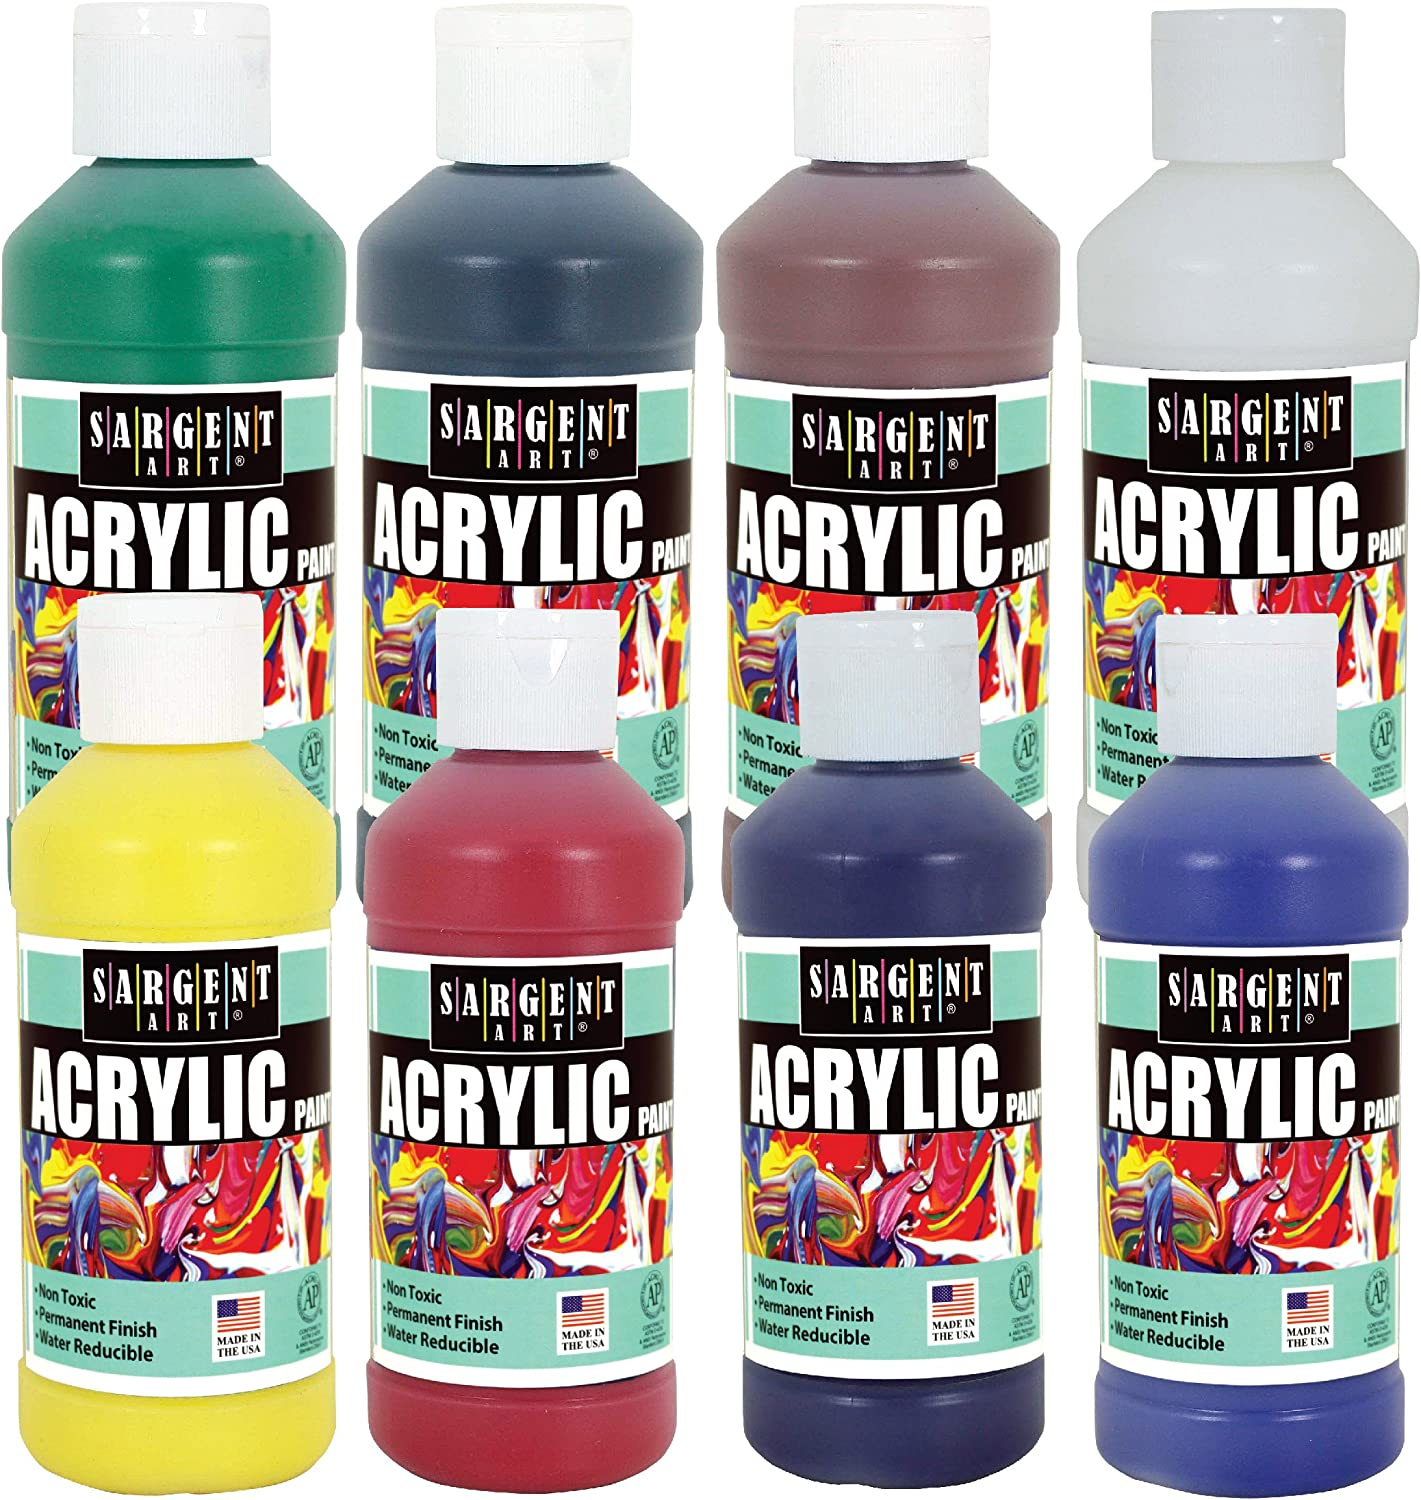 Sargent Art Craft 8 oz Acrylic Paint Set with 8, Assorted, 8 Count